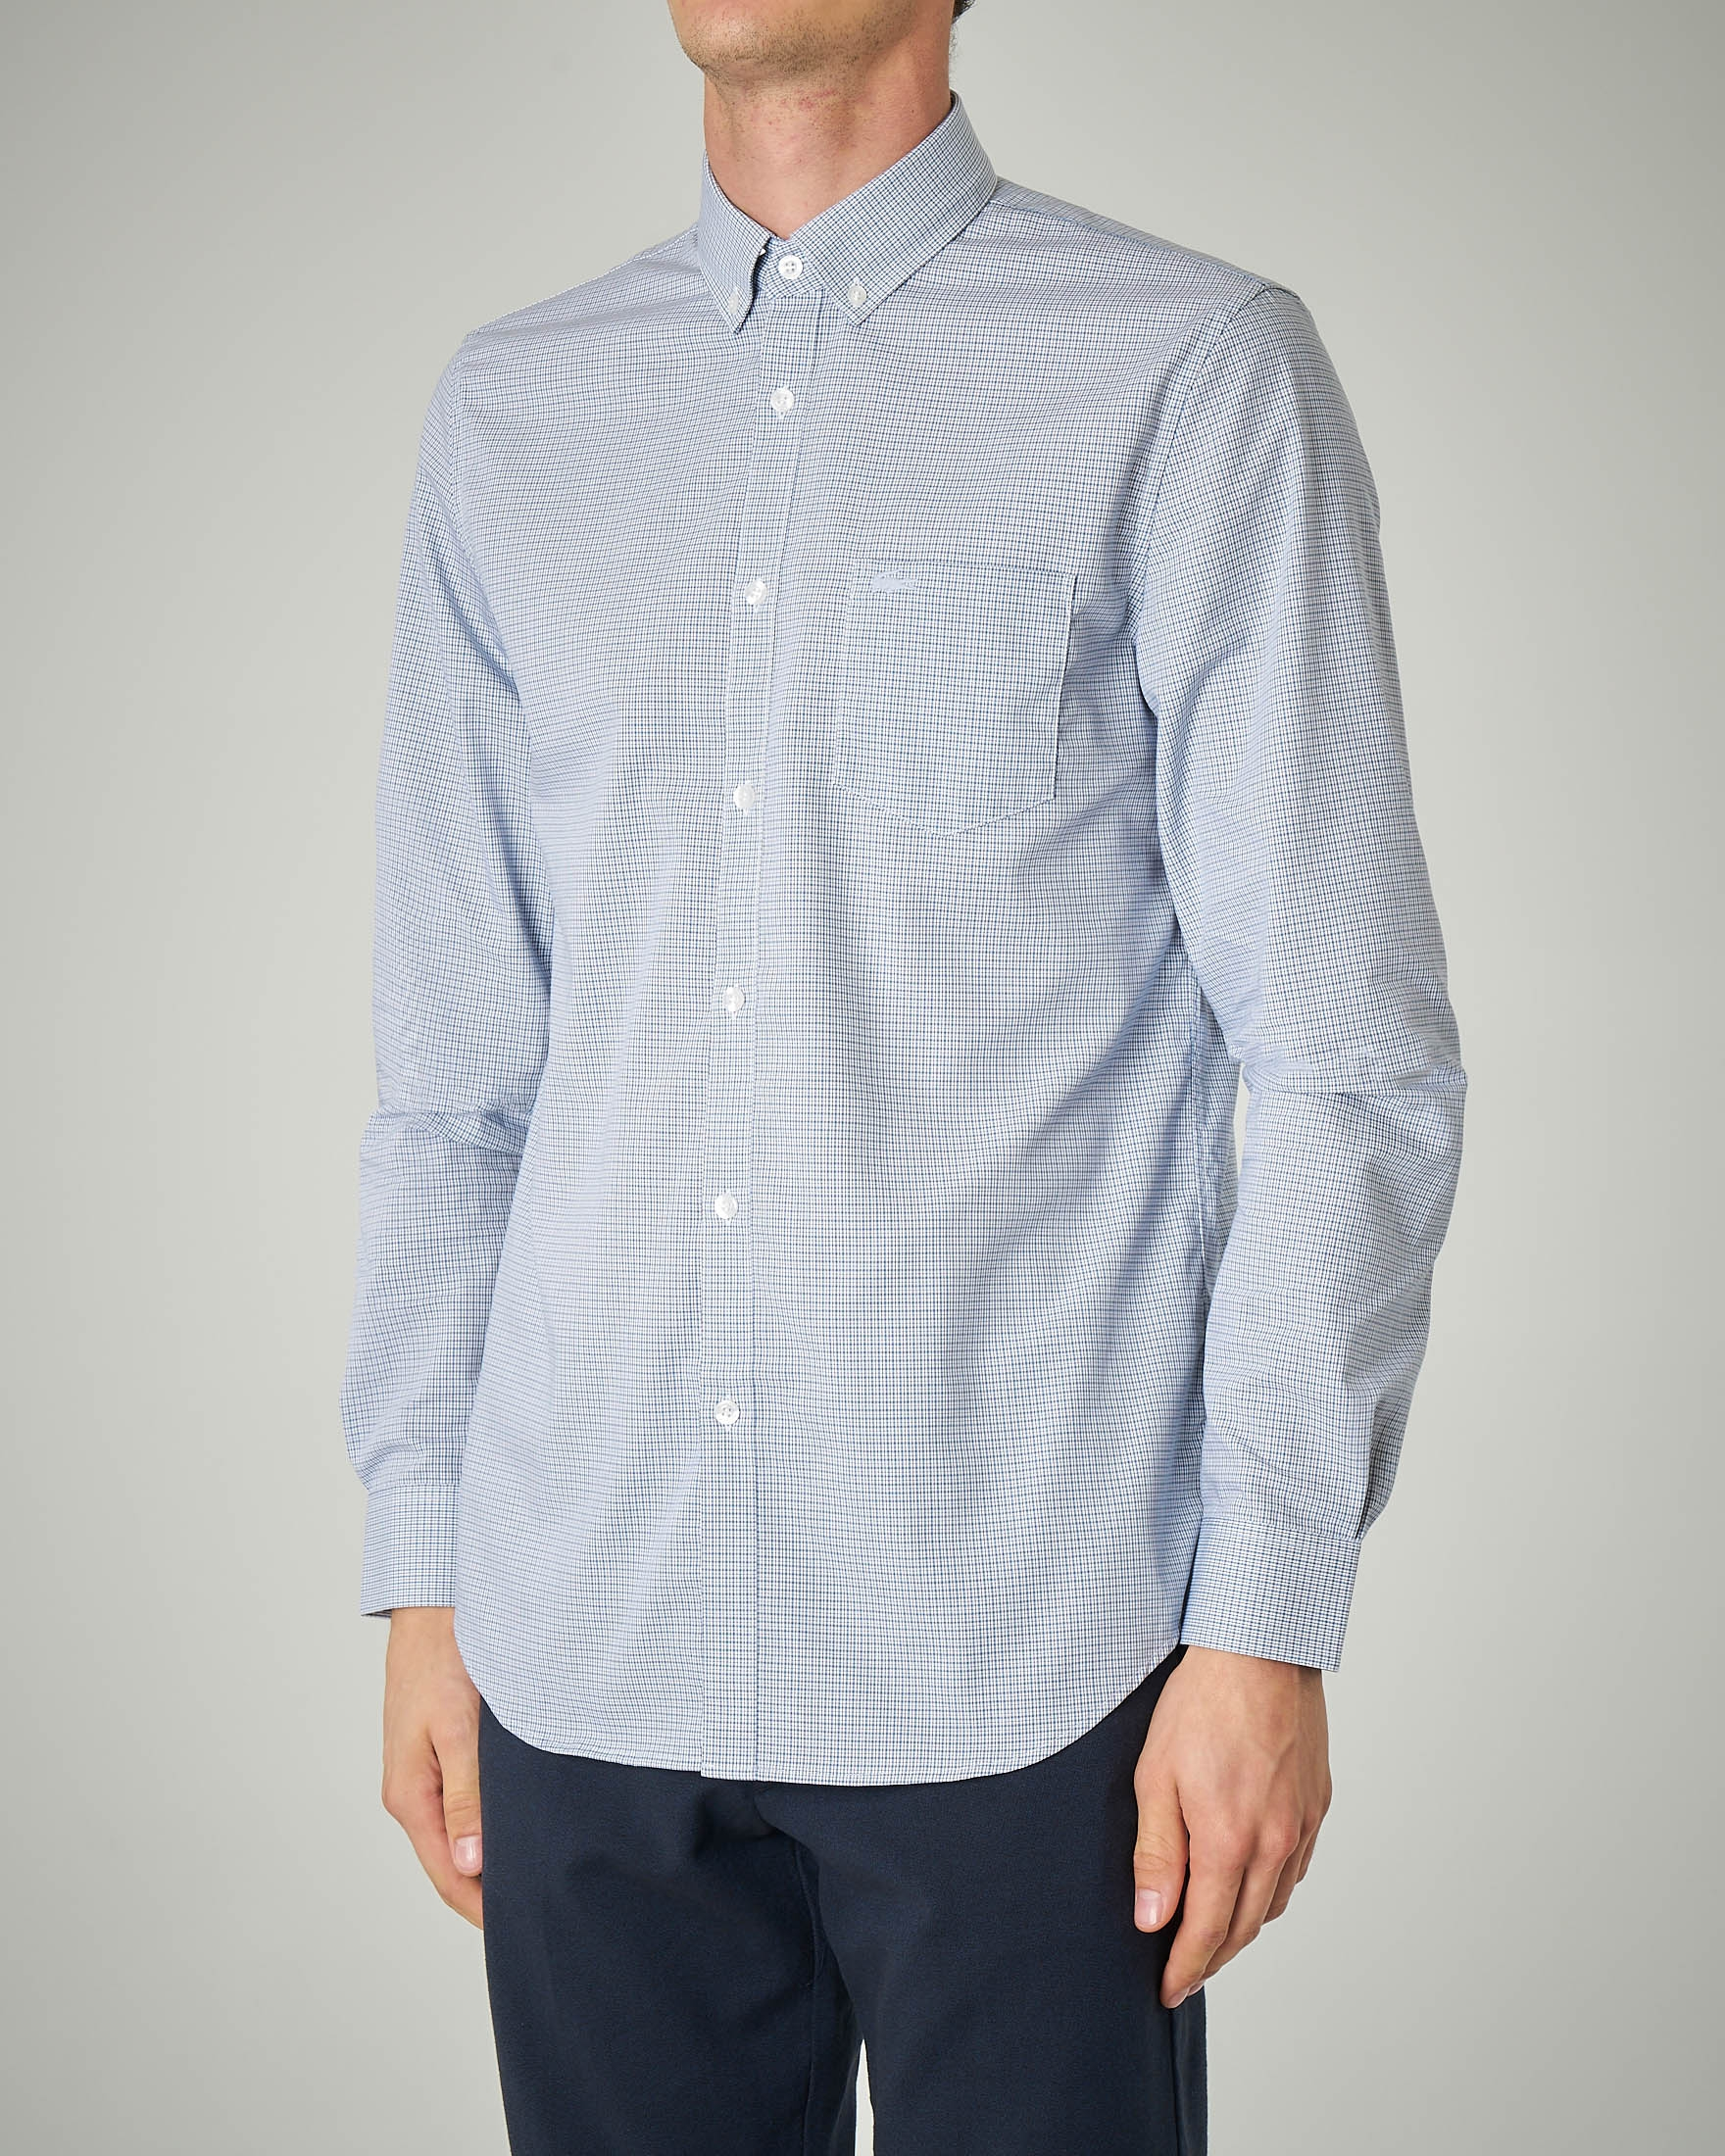 Camicia azzurra micro-quadretto button down con taschino